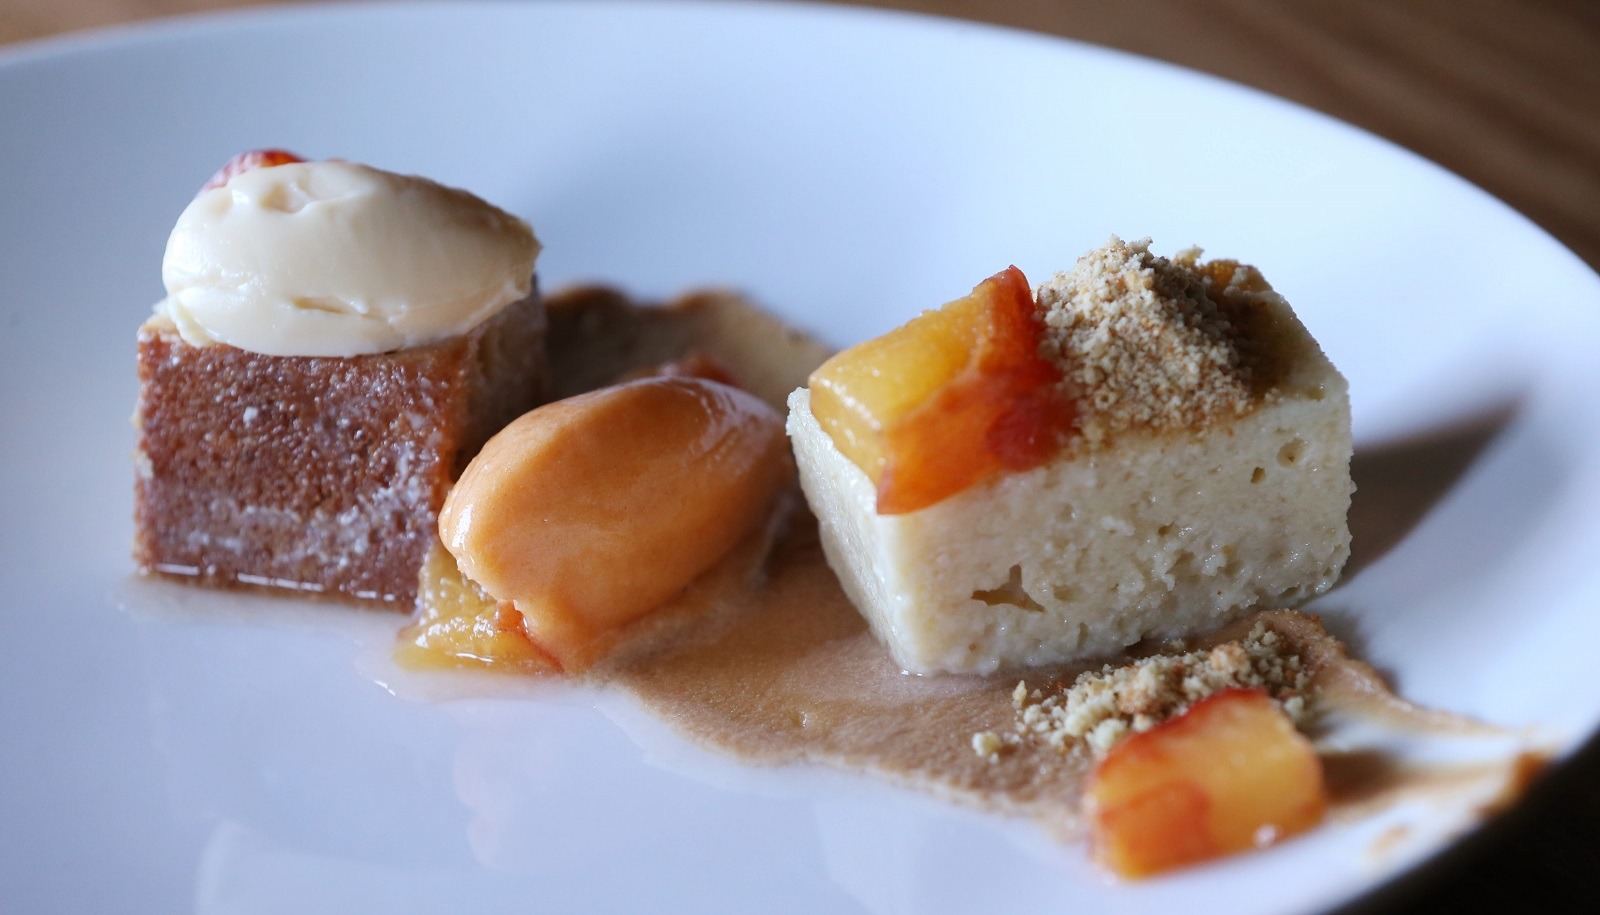 Toutant's Purty Fancy dessert is peach cake, apricot sorbet, dulce de leche and white chocolate ganache. (Sharon Cantillon/Buffalo News)